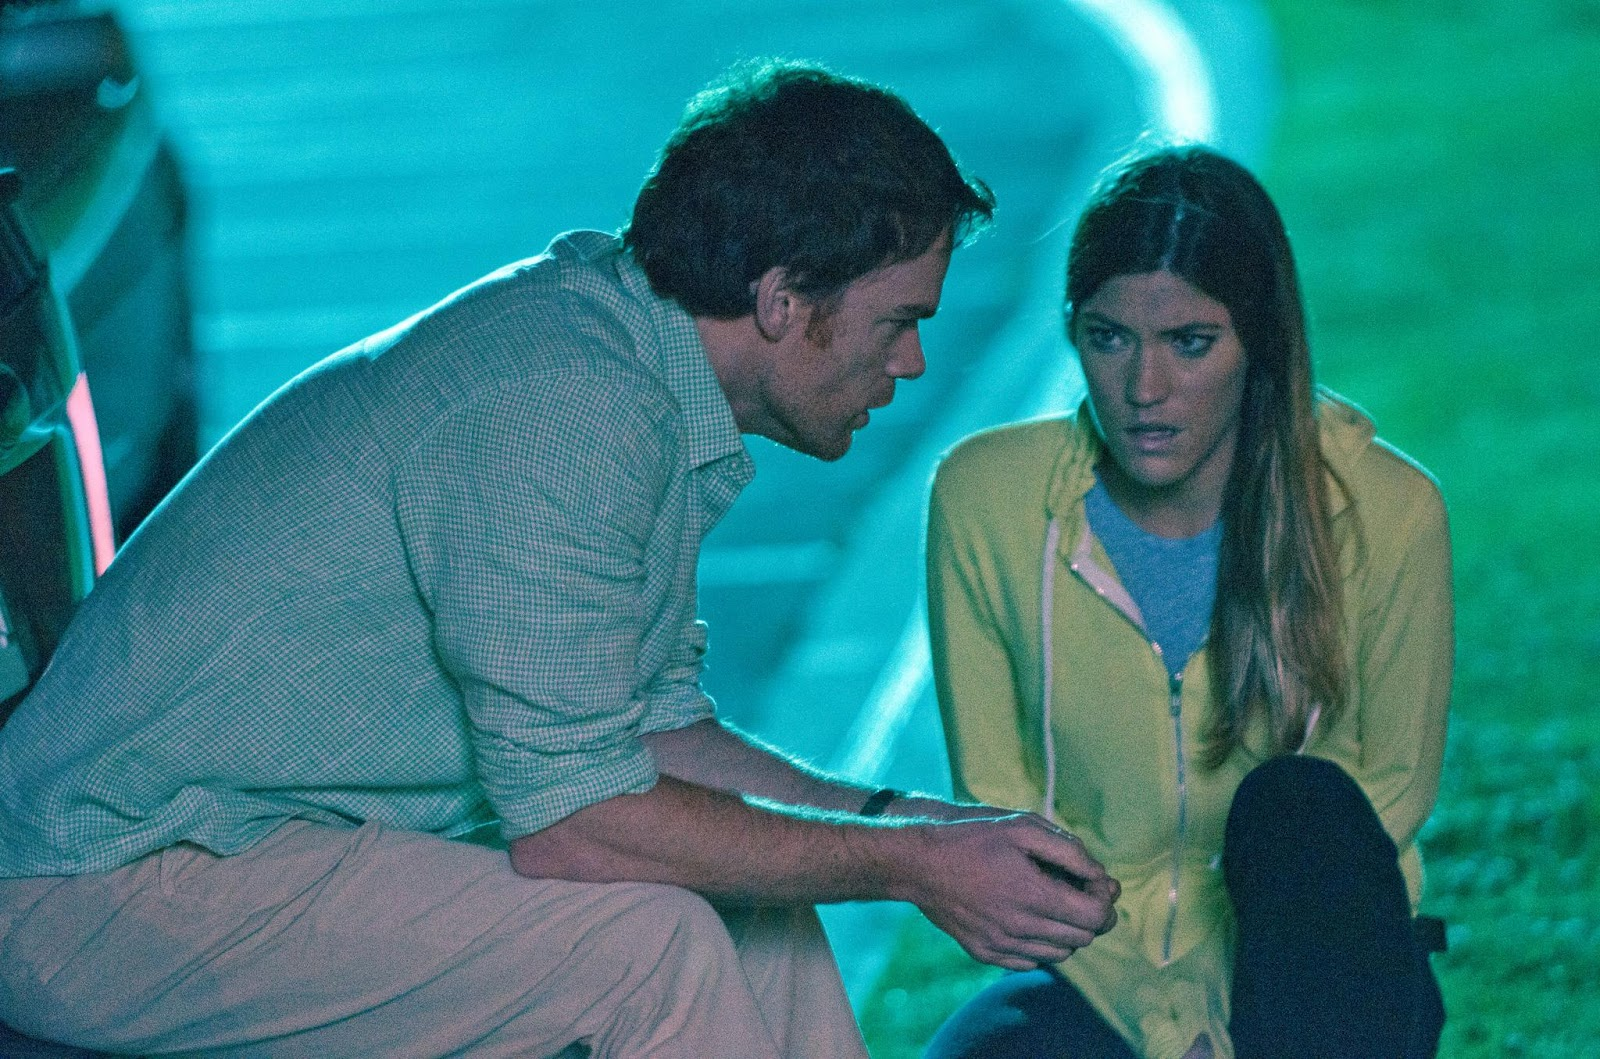 http://1.bp.blogspot.com/-BVj5SfovV_4/UEepjW-sZzI/AAAAAAAAI-w/nEQLCY3UZ-0/s1600/picture-of-michael-c-hall-and-jennifer-carpenter-in-dexter-large-picture.jpg